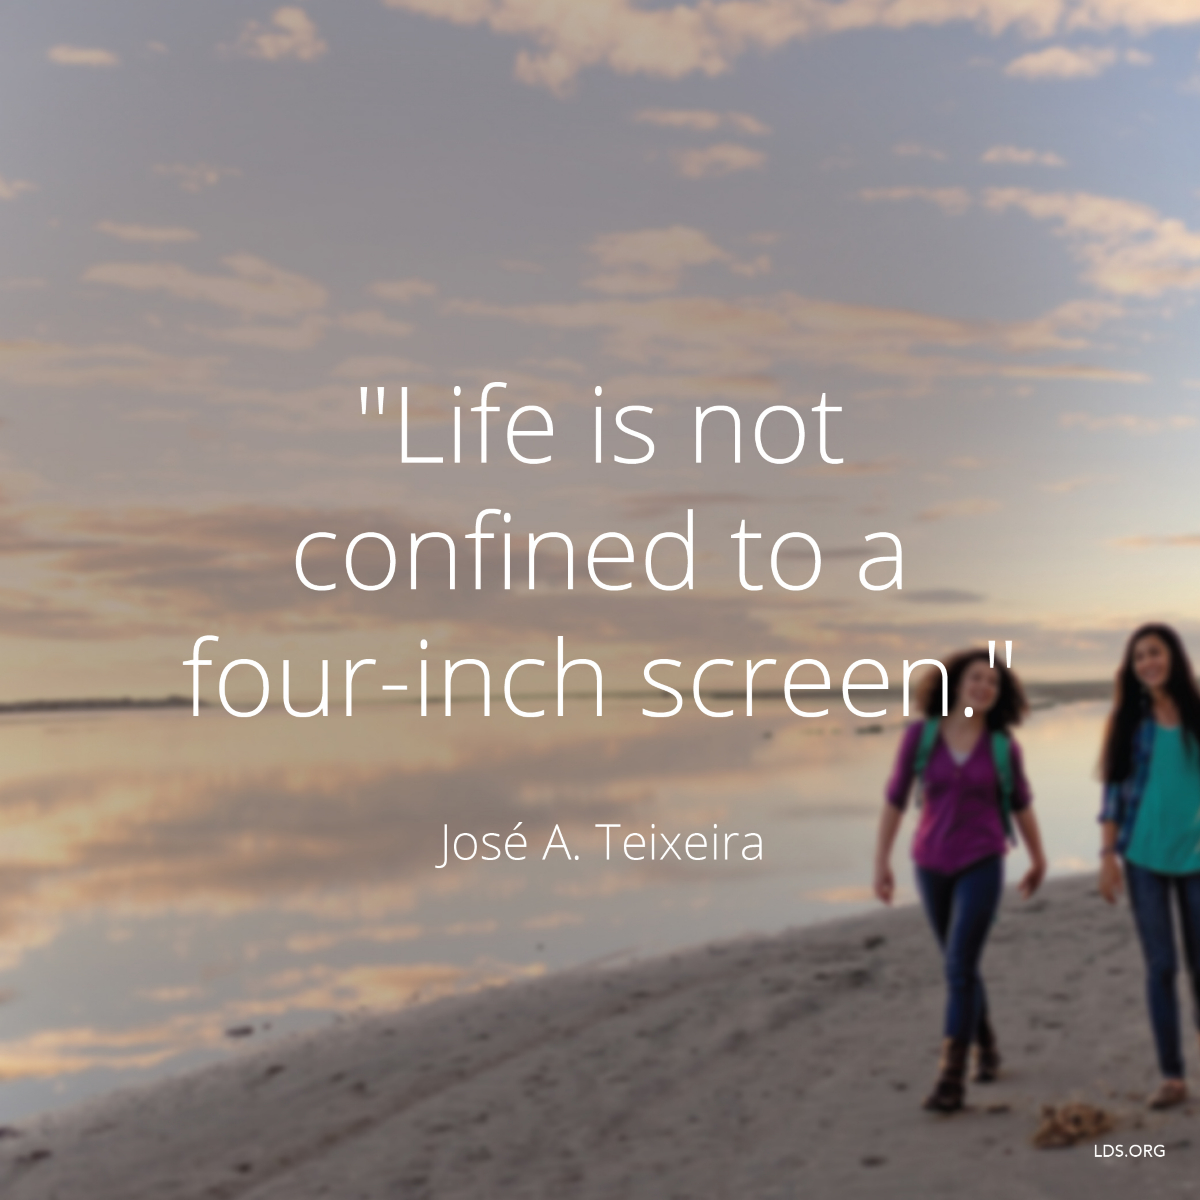 Life Is Not Confined